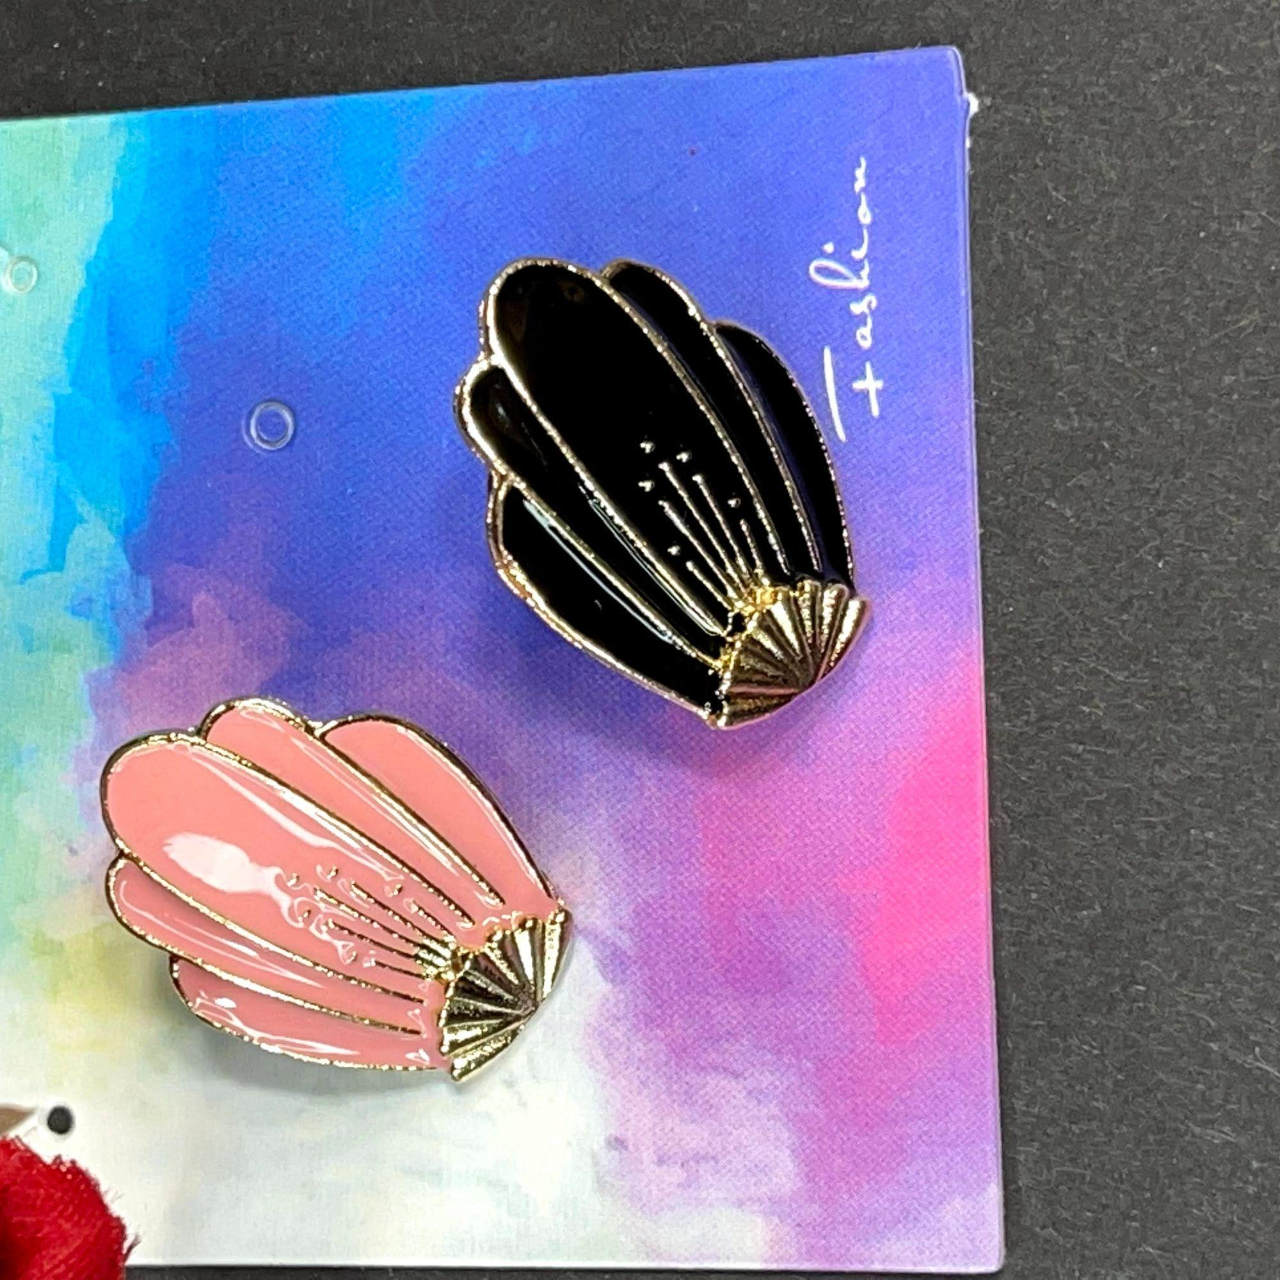 Product Image 1 - Pink and Black Clam Shell